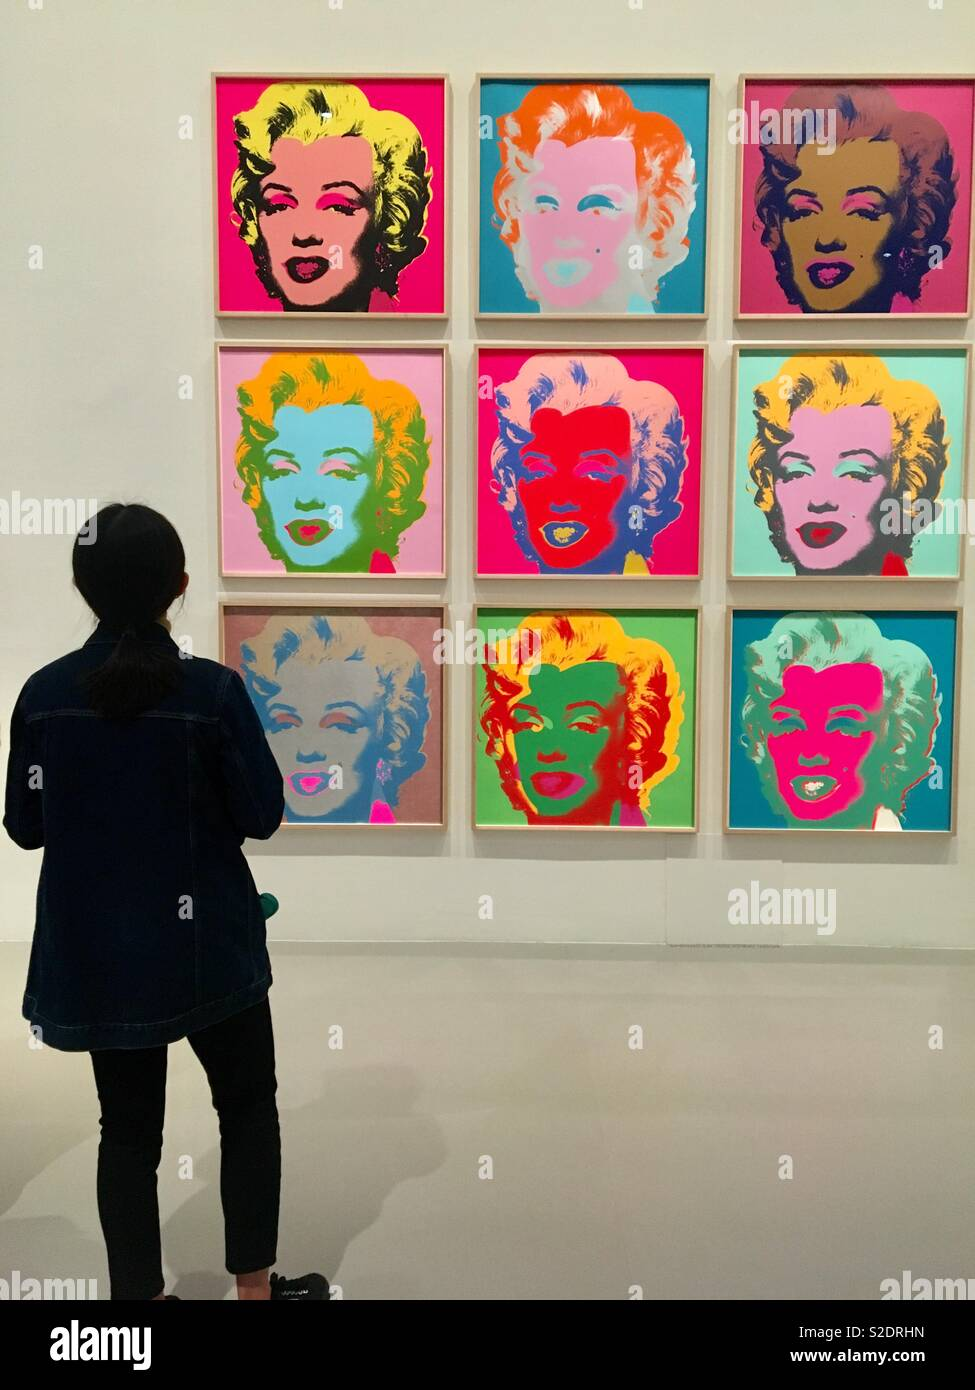 Andy Warhol Painting High Resolution Stock Photography And Images Alamy